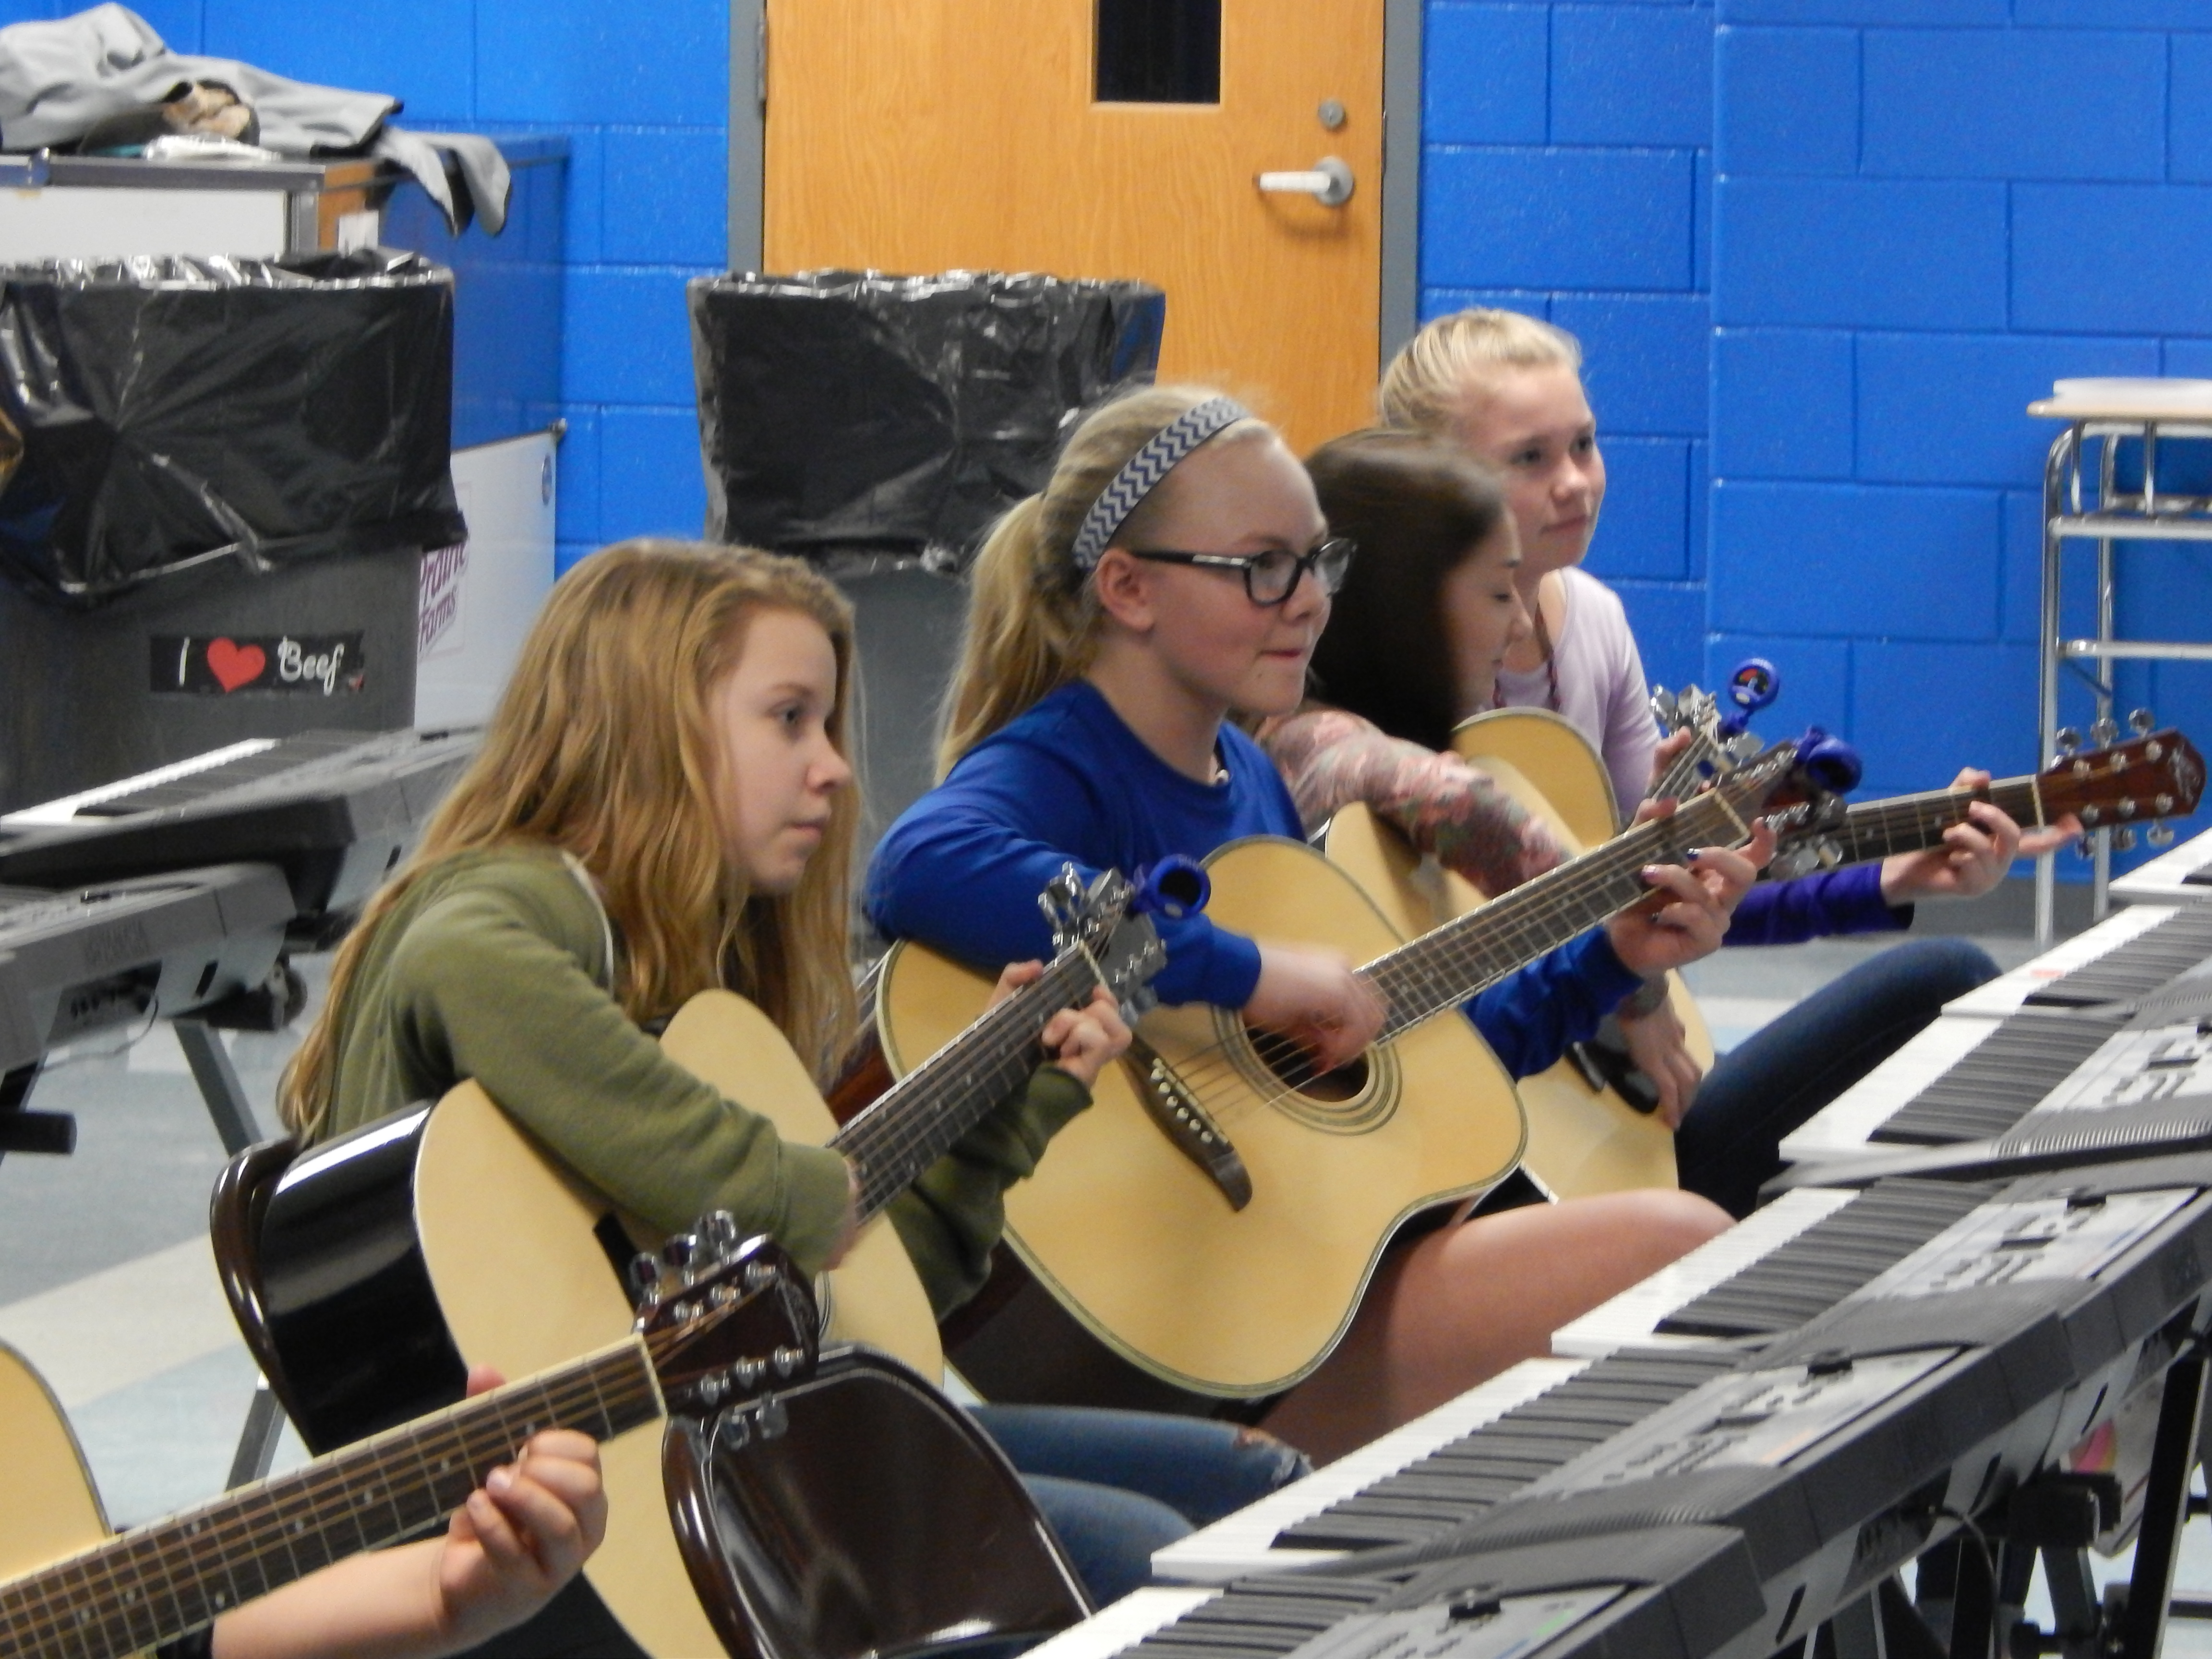 On Thursday, March 1, 2018, Clinton County Middle School held the third student showcase of the year.